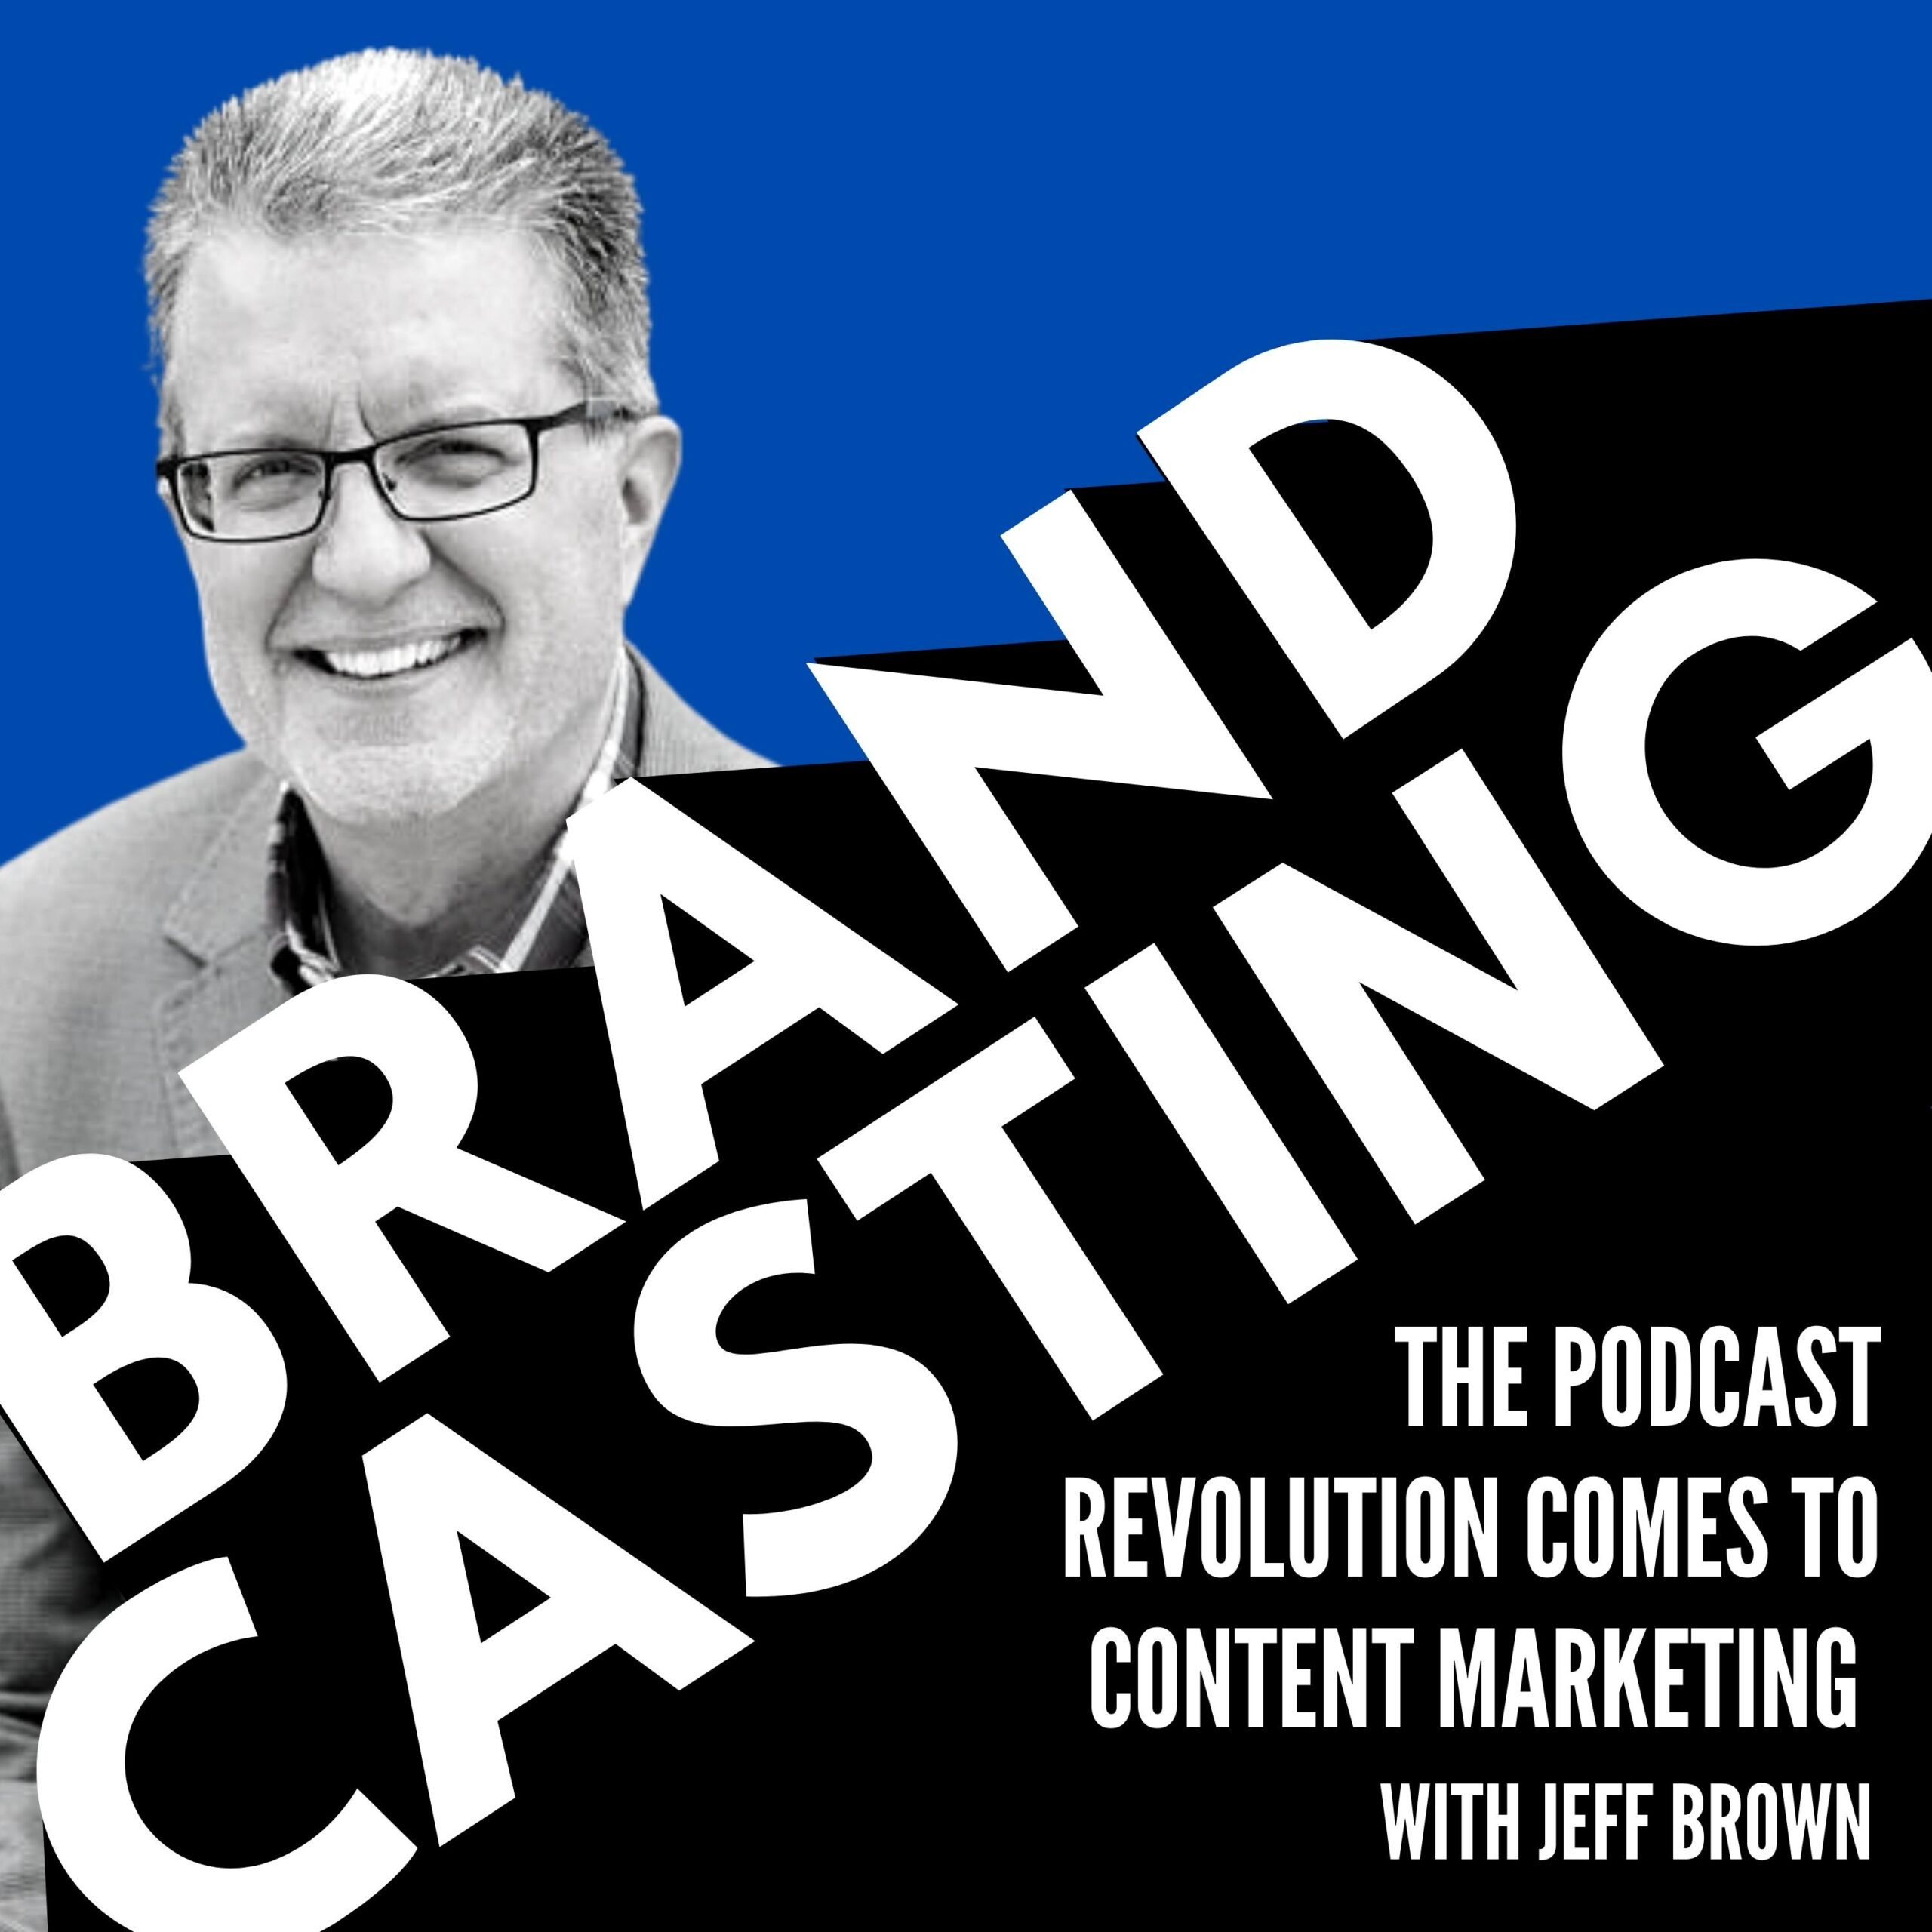 The Podcast Revolution Comes to Content Marketing with Jeff Brown